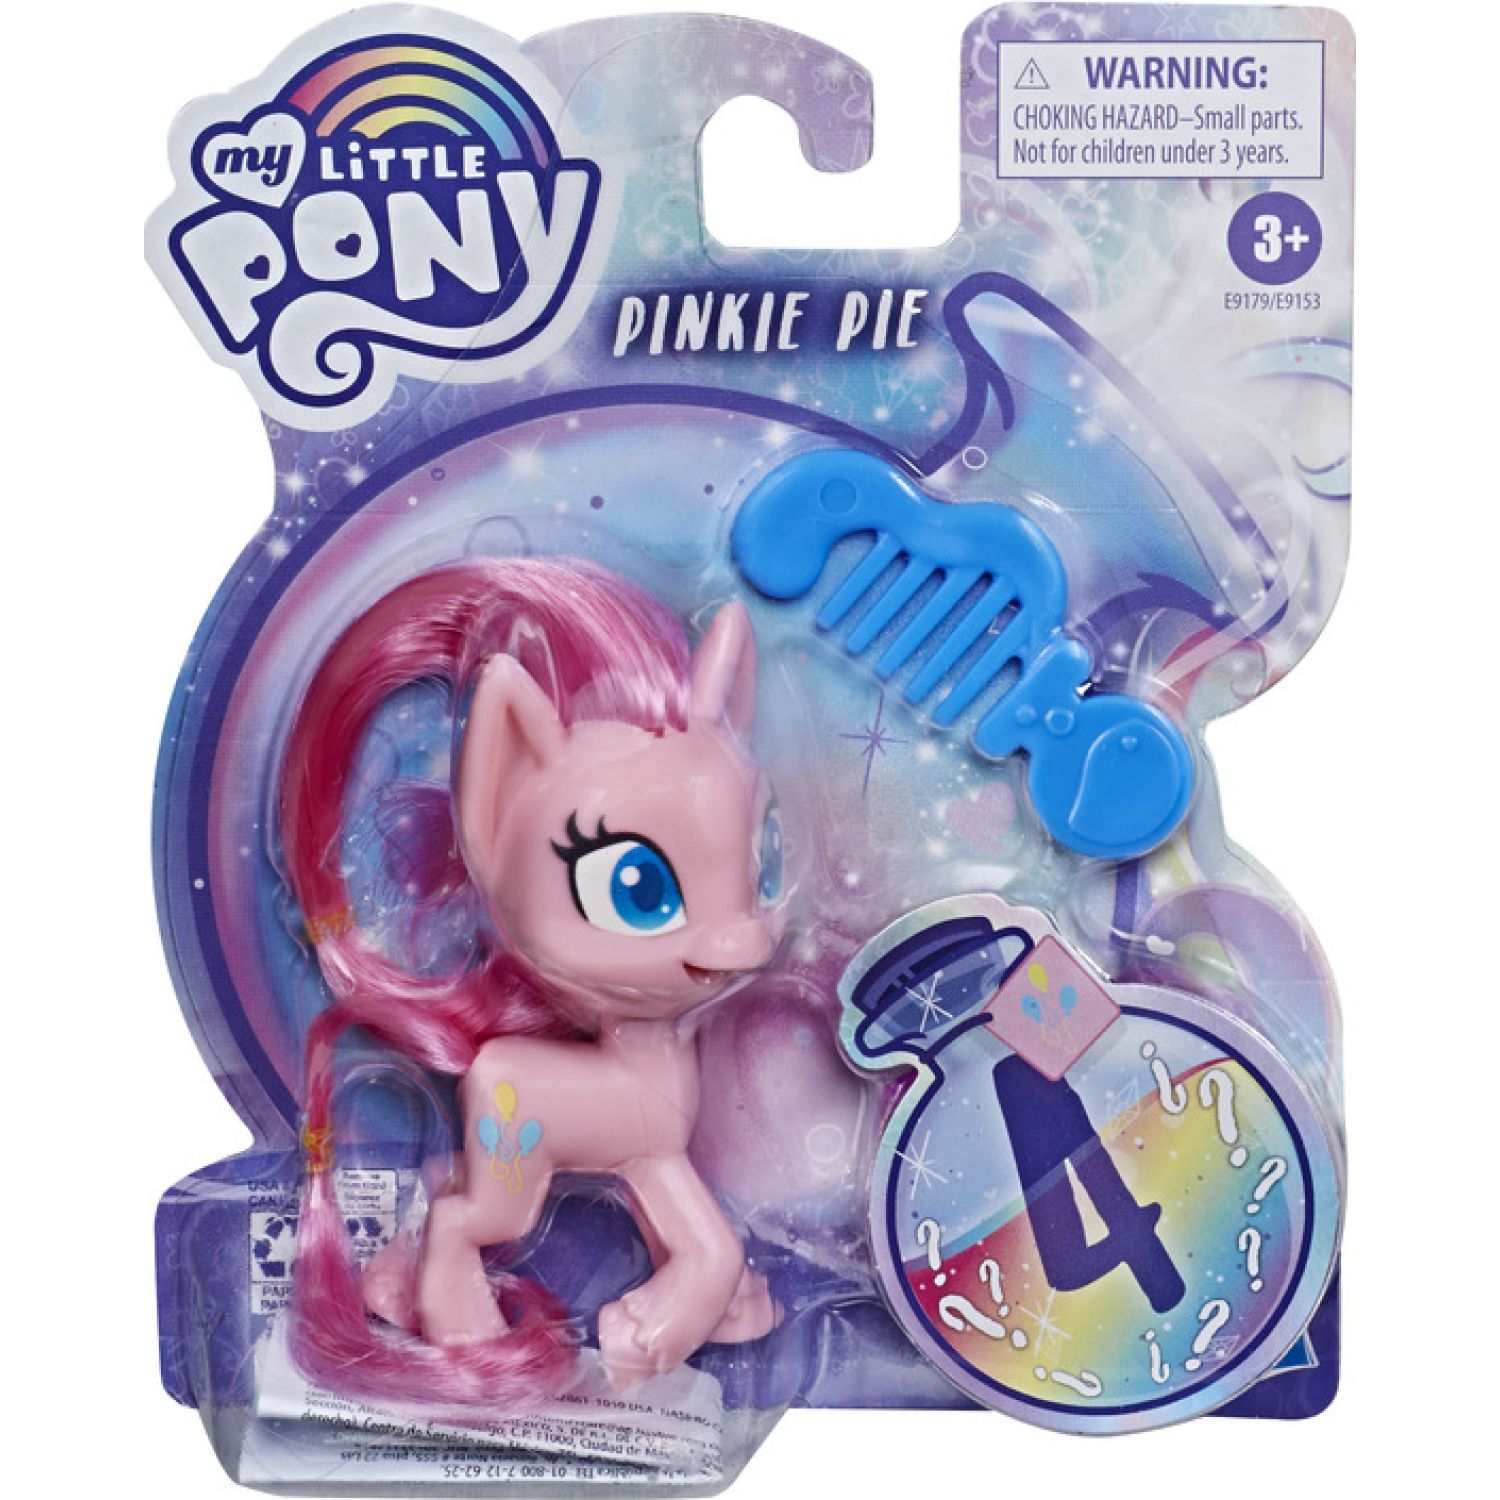 My Little Pony MLP POTION PONY PINKIE PIE Varios Juguete Vehicular de RC